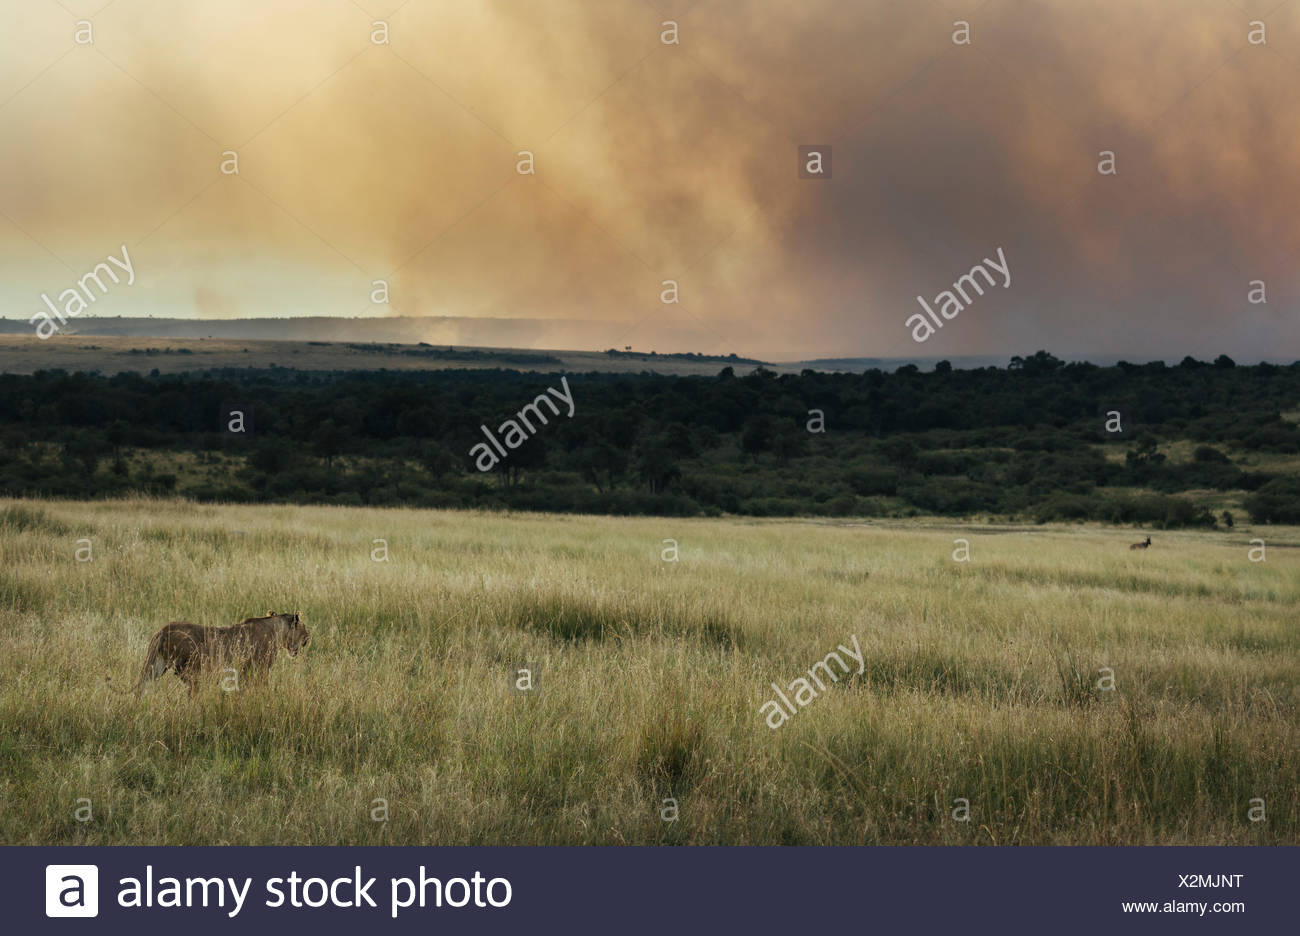 A lioness, Panthera leo, hunting a topi in tall grass. - Stock Image